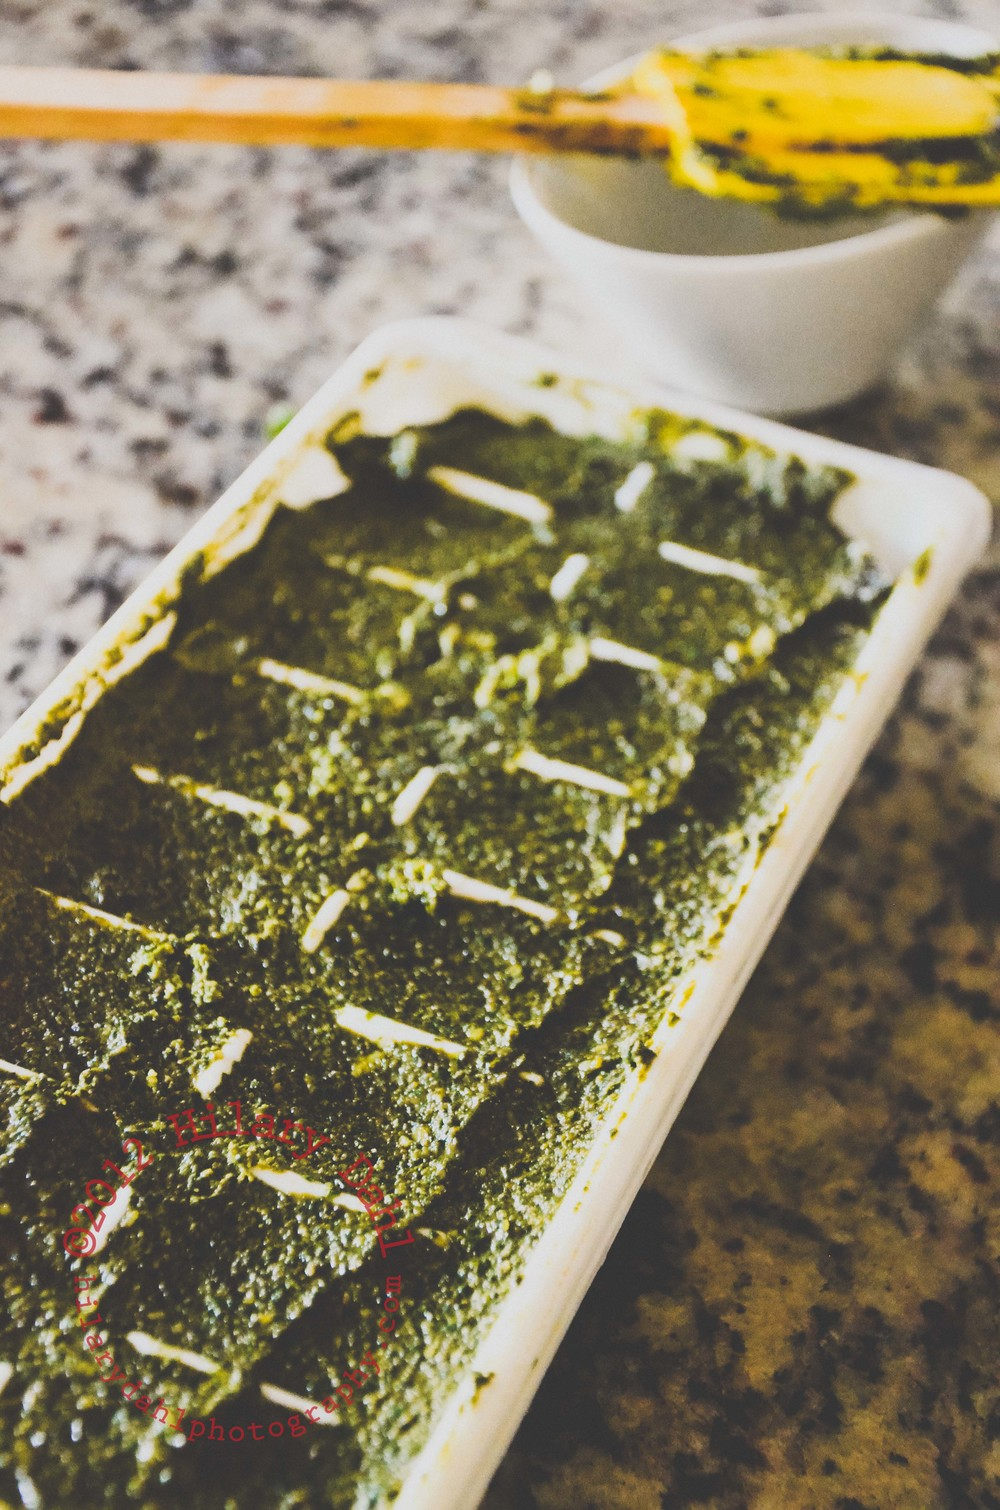 Freeze pesto in ice cube trays for ease of use.